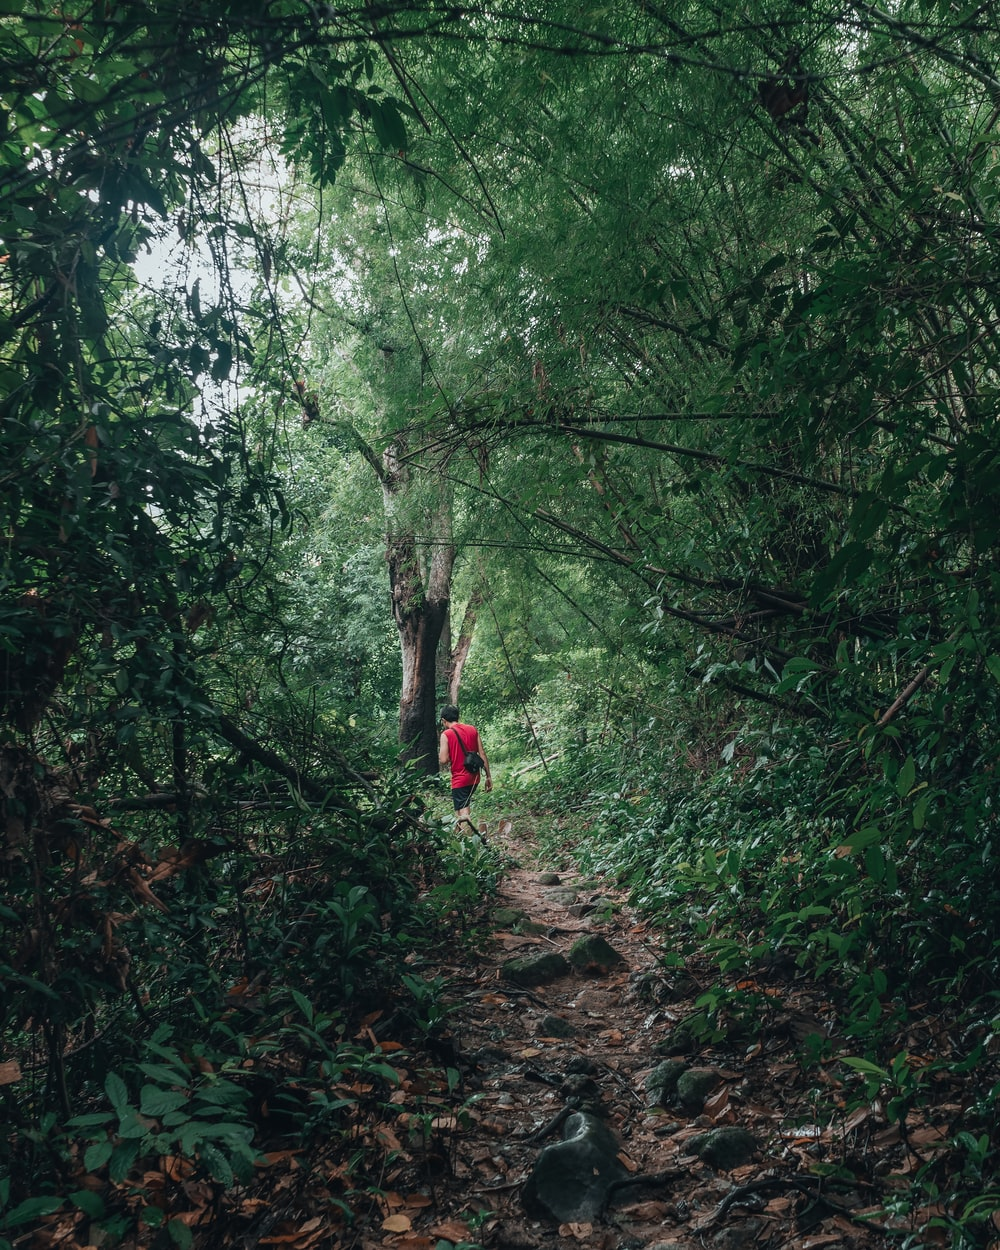 person in red jacket walking on dirt path between green trees during daytime